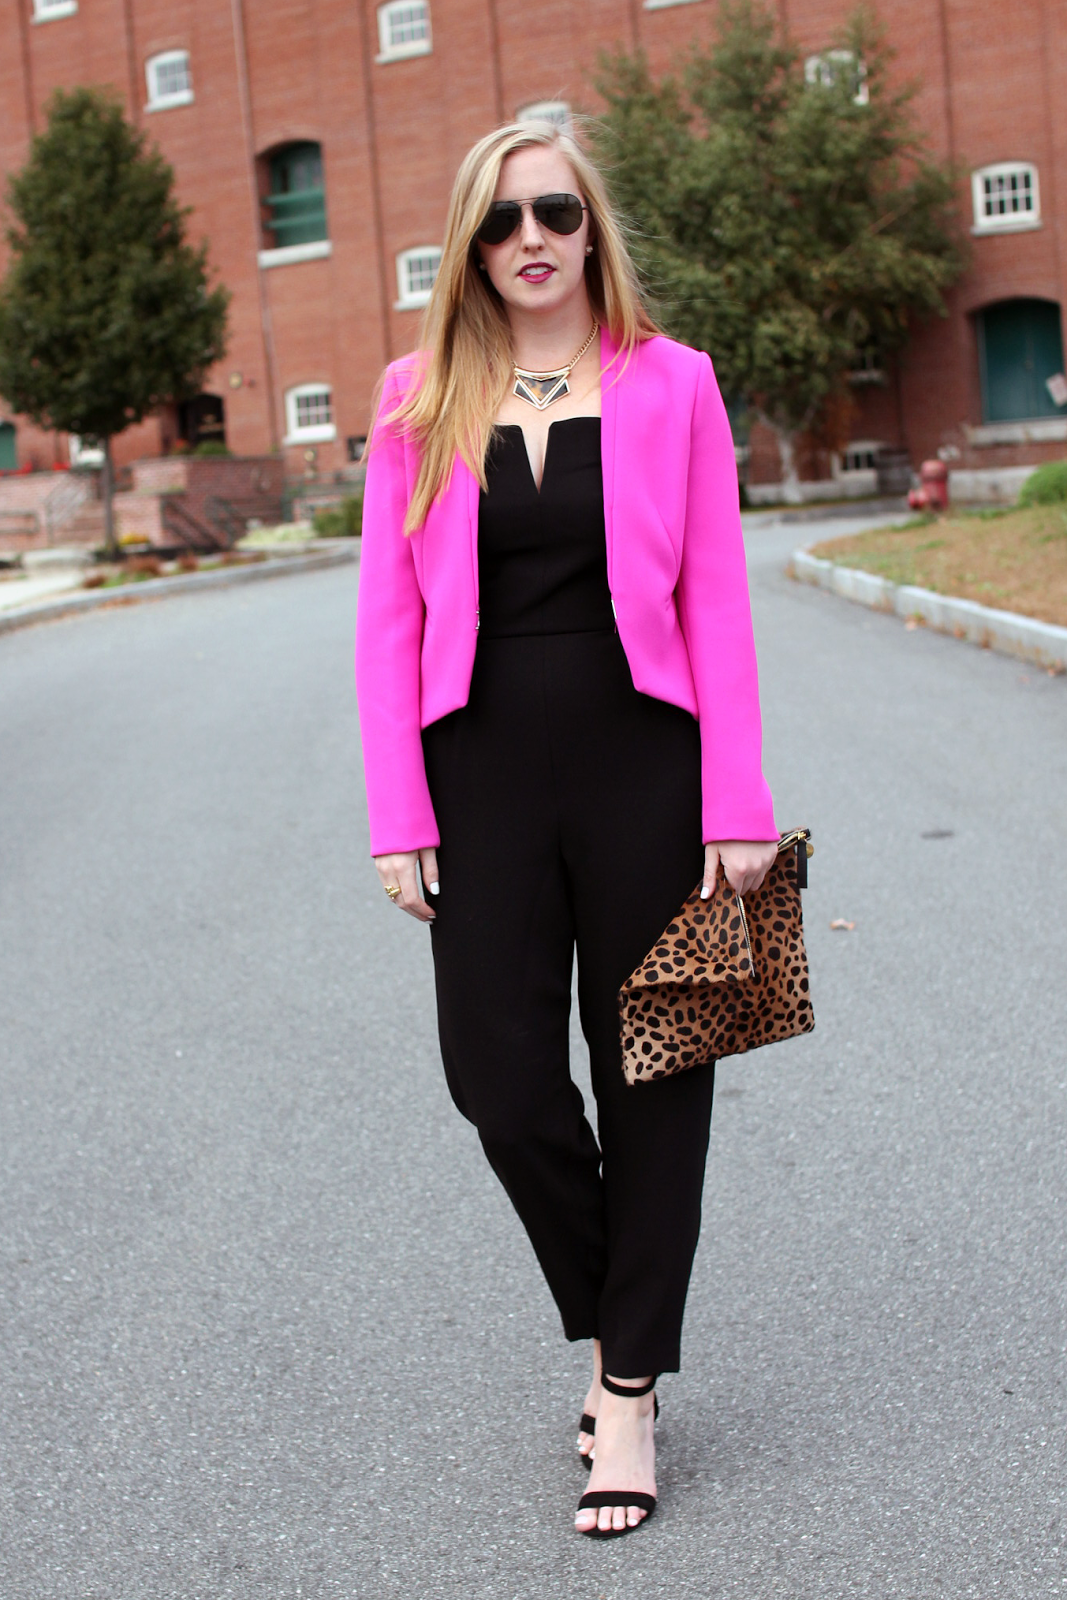 Topshop Plunge Bandeau Jumpsuit, DVF Pink Blazer, Black Jumpsuit, Boston Blogger, Boston Style Blogger, Boston Fashion Blogger, Rehearsal Dinner Jumpsuit